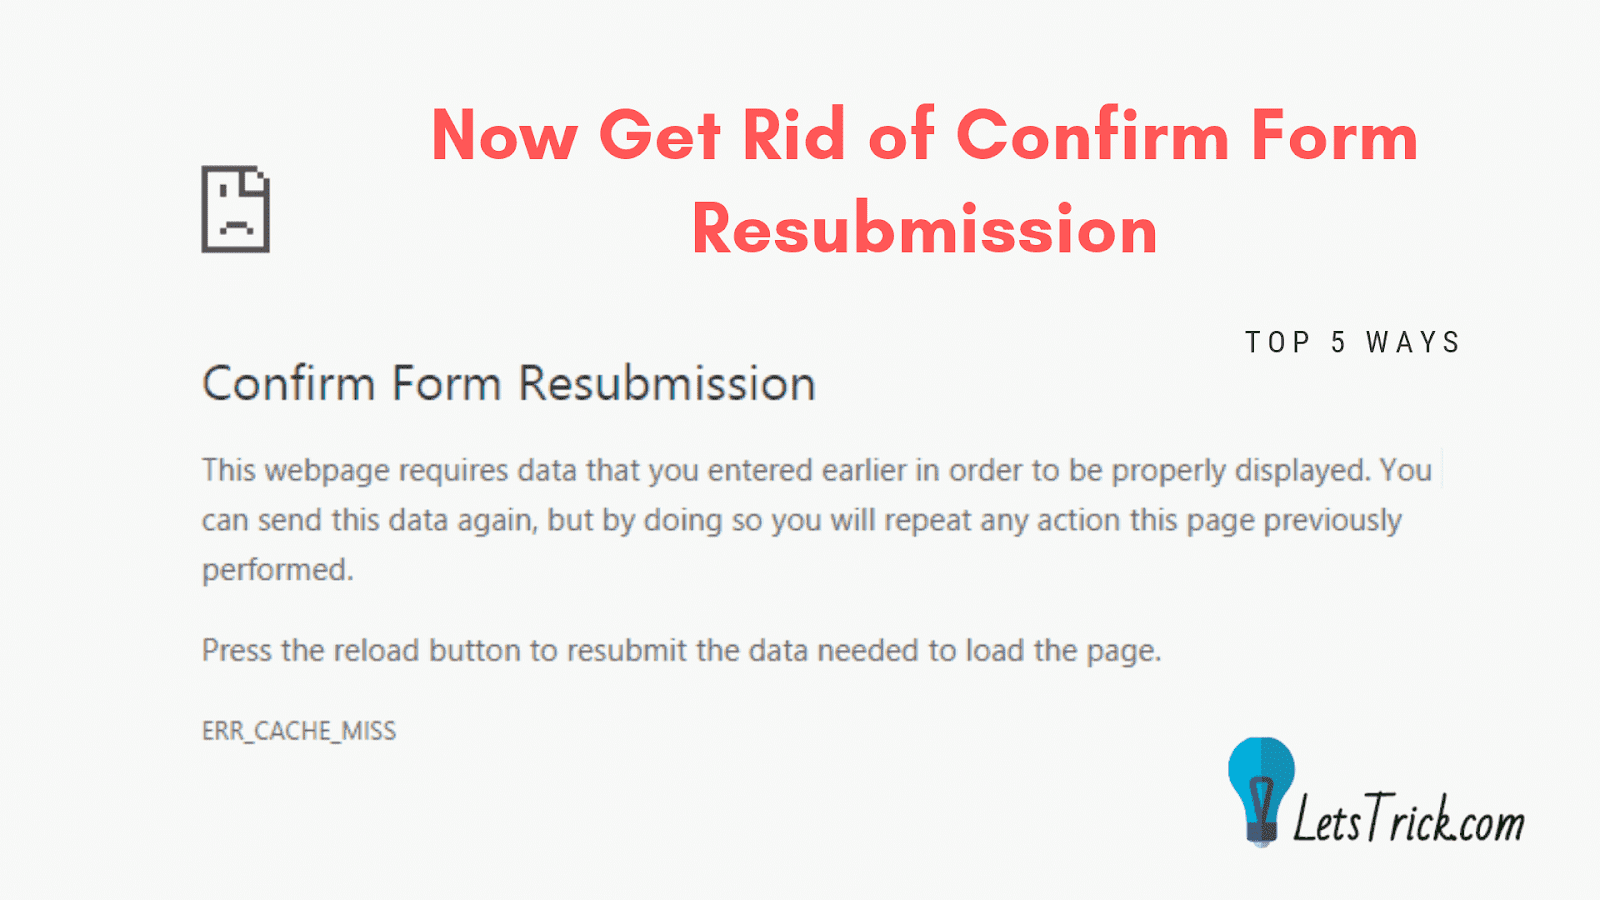 Confirm Form Resubmission 2019